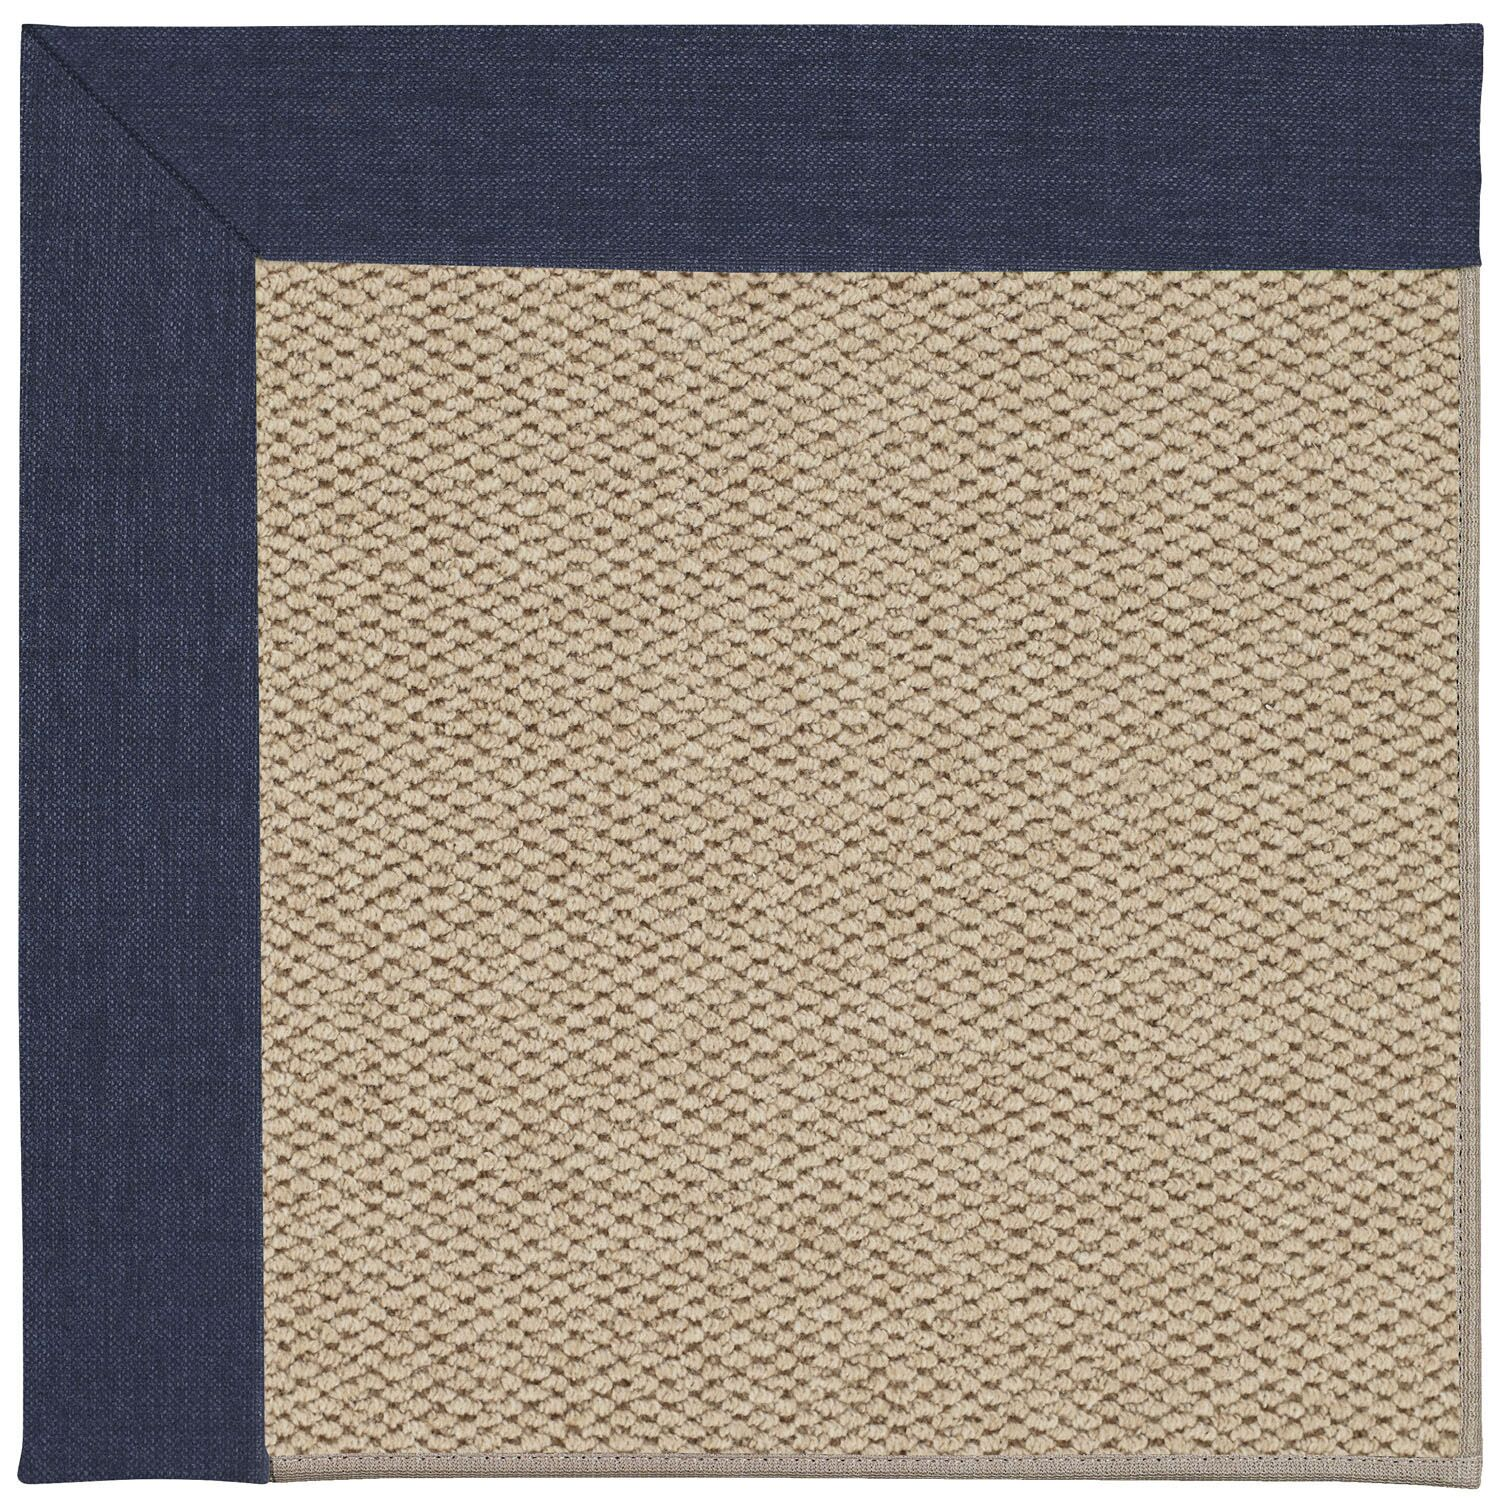 Barrett Champagne Machine Tufted Navy/Beige Area Rug Rug Size: Rectangle 12' x 15'